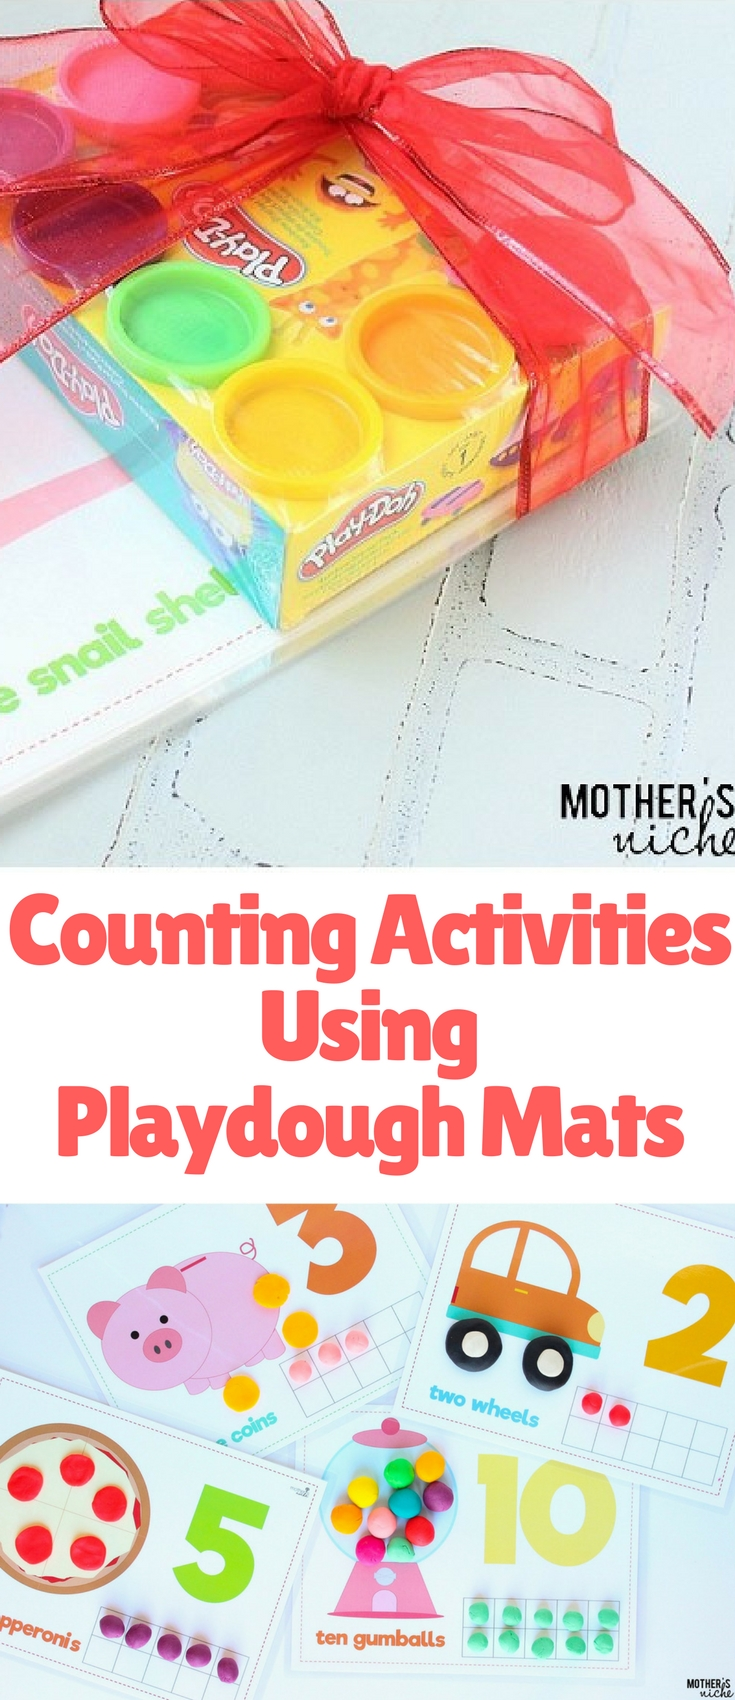 These play dough mat counting activities are a great tool in teaching counting, coordination, problem solving and number recognition.